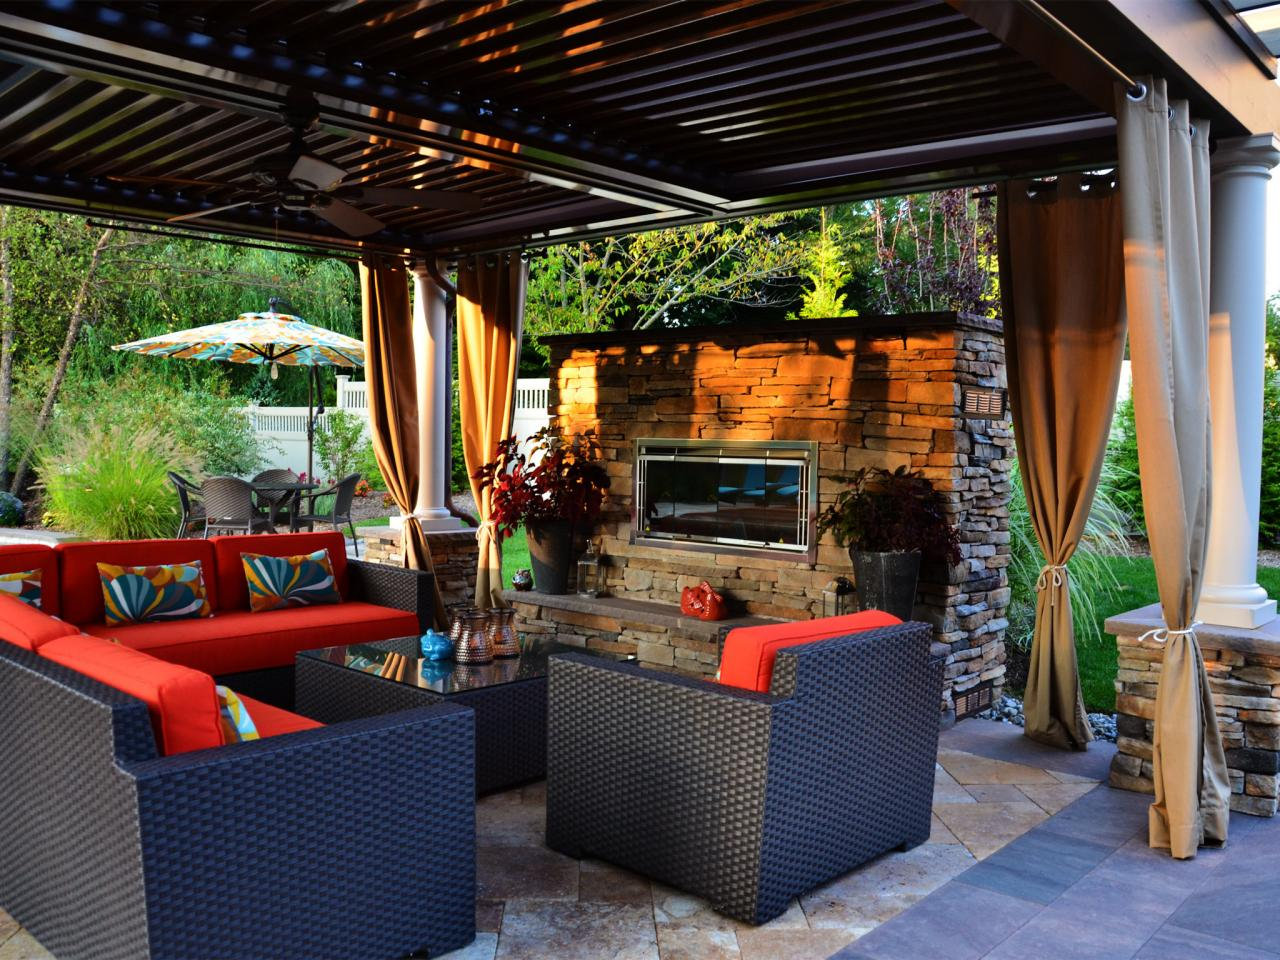 Admirable Outdoor Fireplace Costs Budgeting An Outdoor Fireplace Hgtv Backyard Living Areas Backyard Living Area Designs outdoor Backyard Living Area